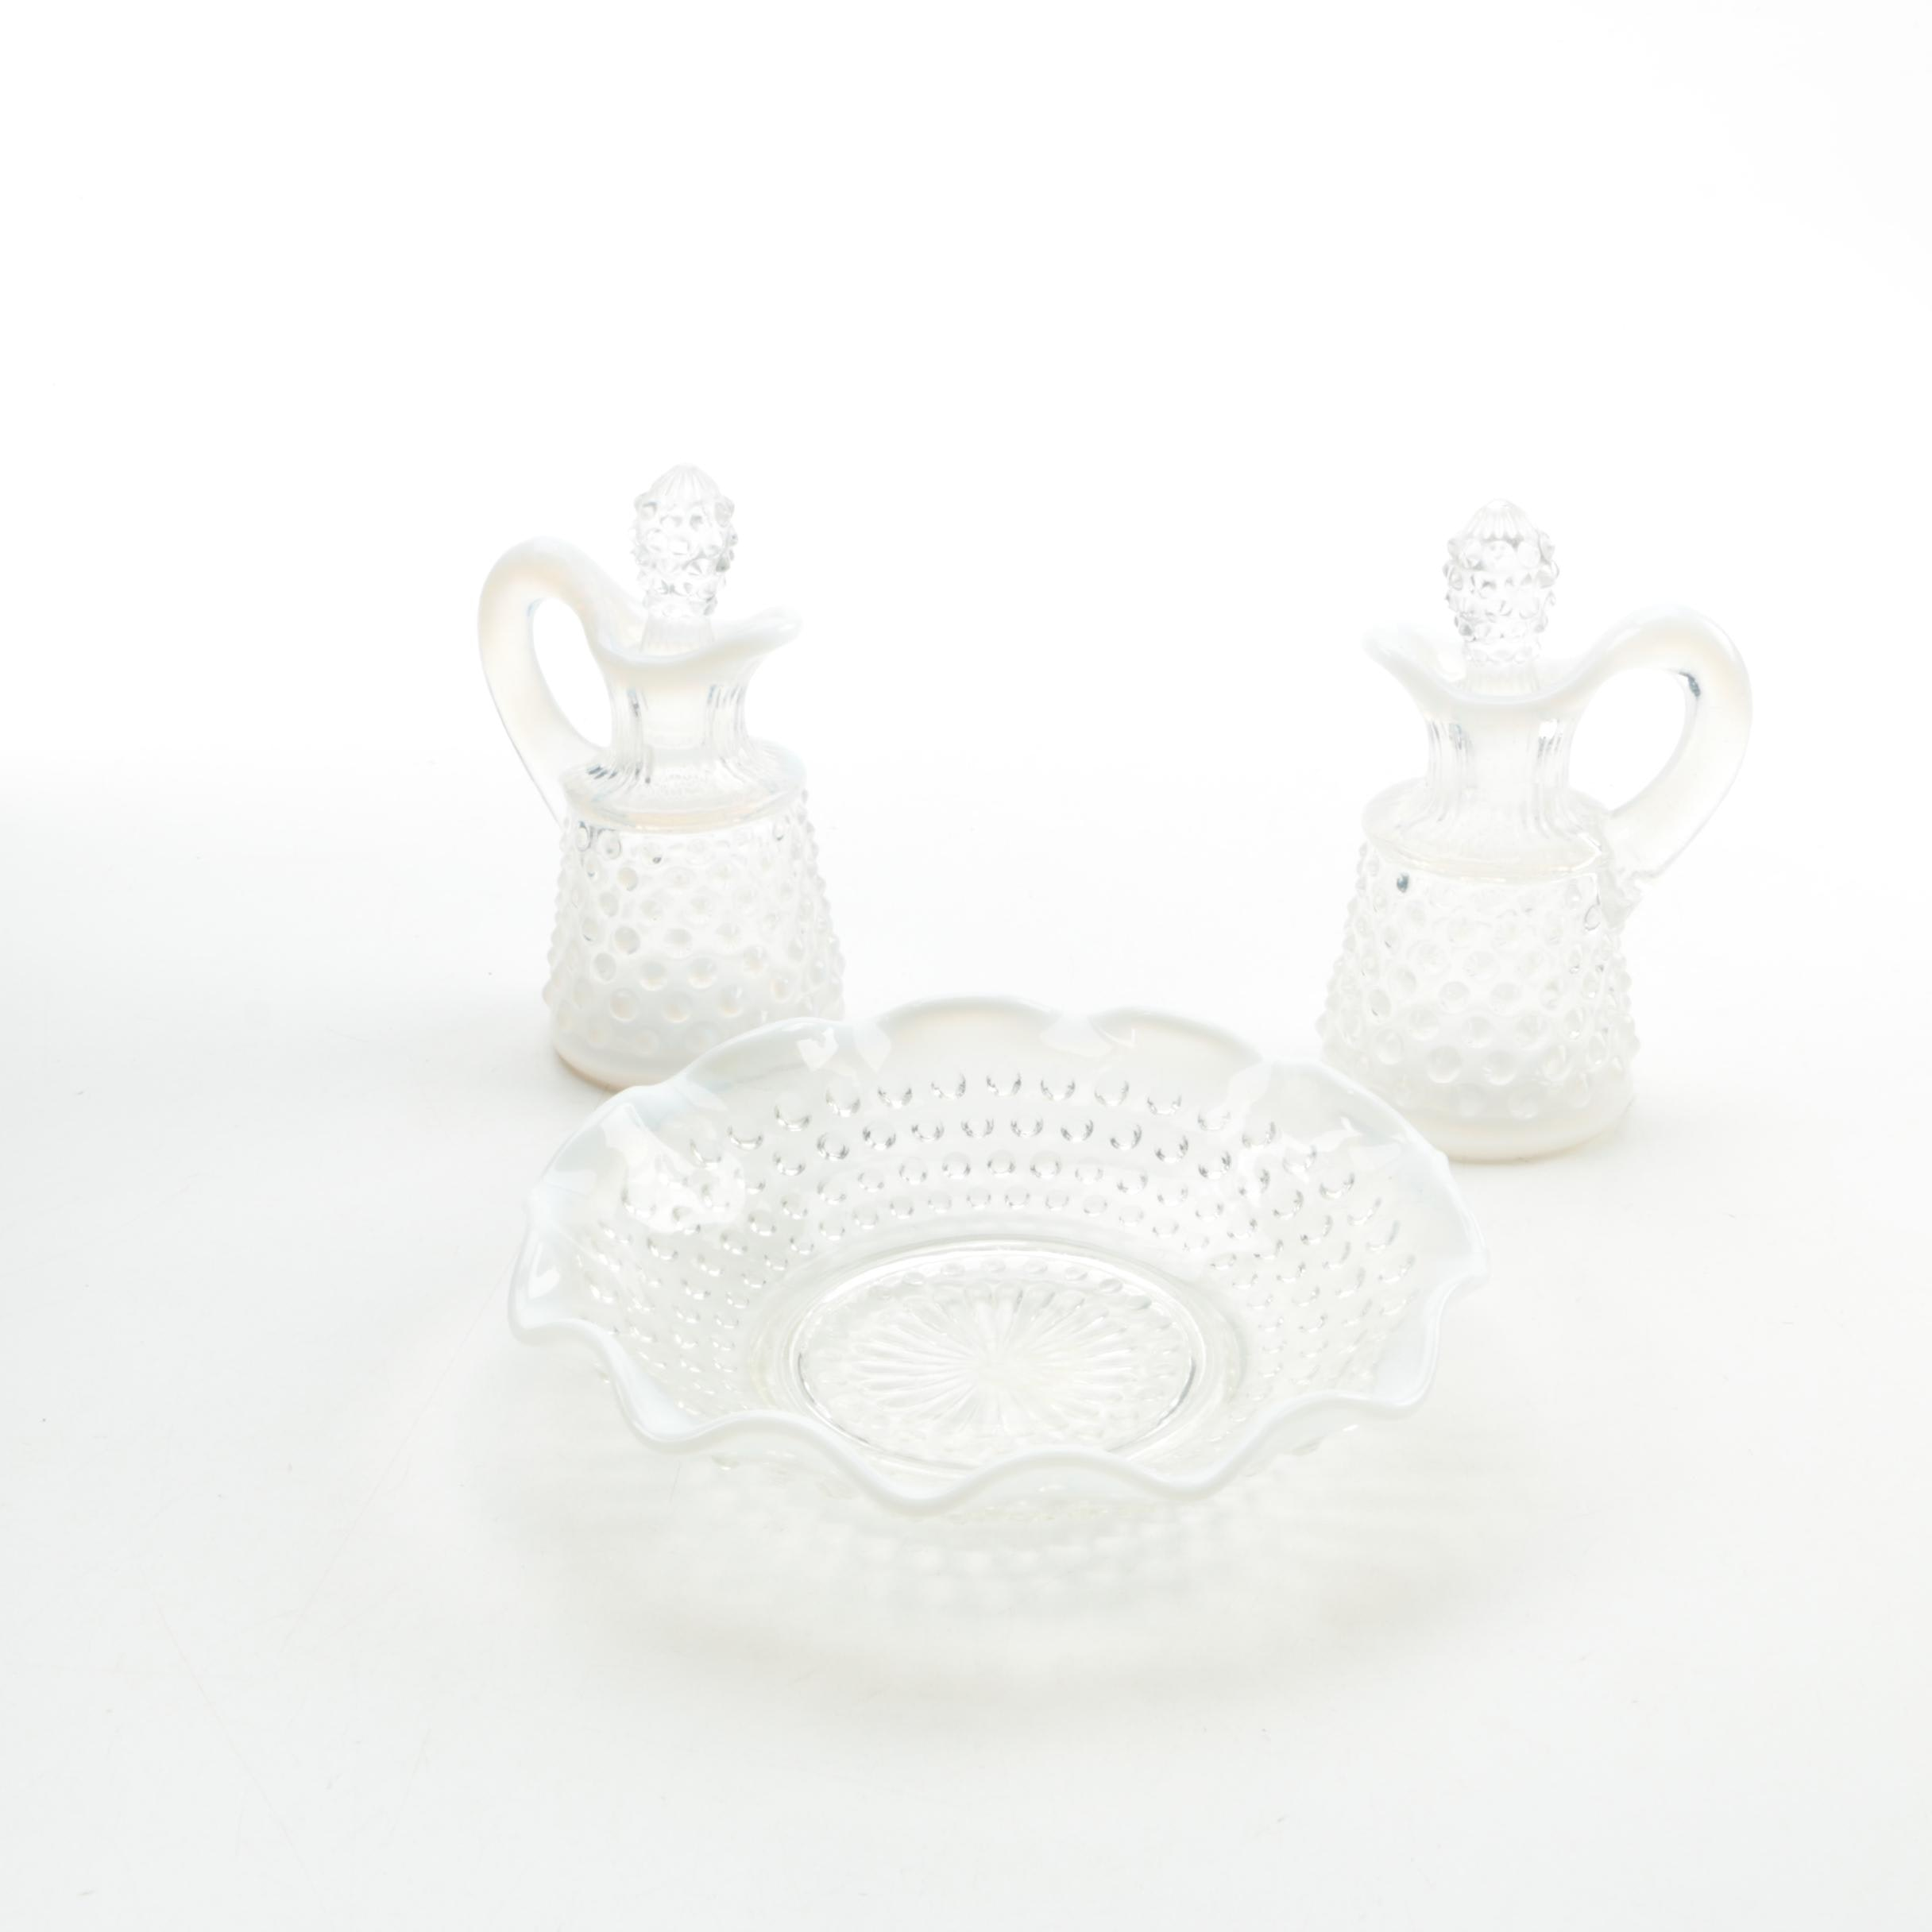 Hobnail Glass Serving Pieces